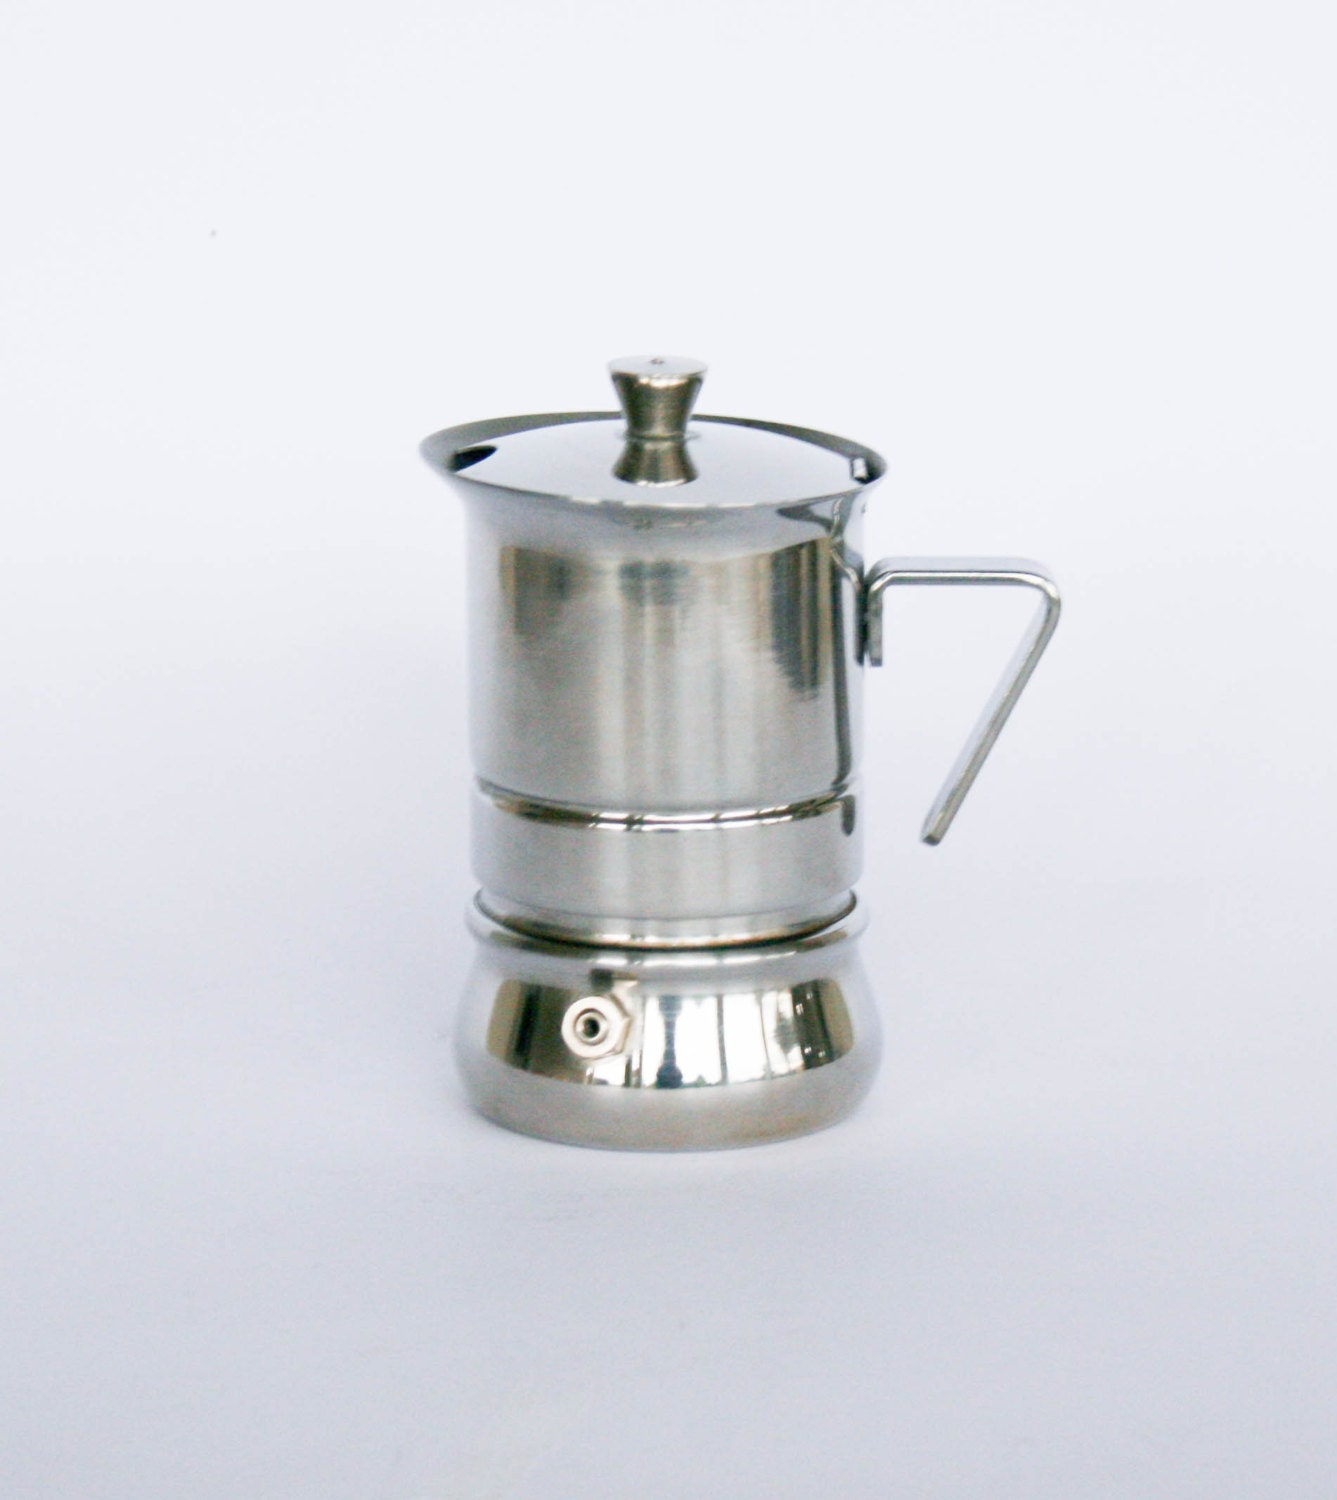 One Cup Latte Coffee Maker : Vintage Stainless Steel Coffee Maker / Espresso Maker 1 cup